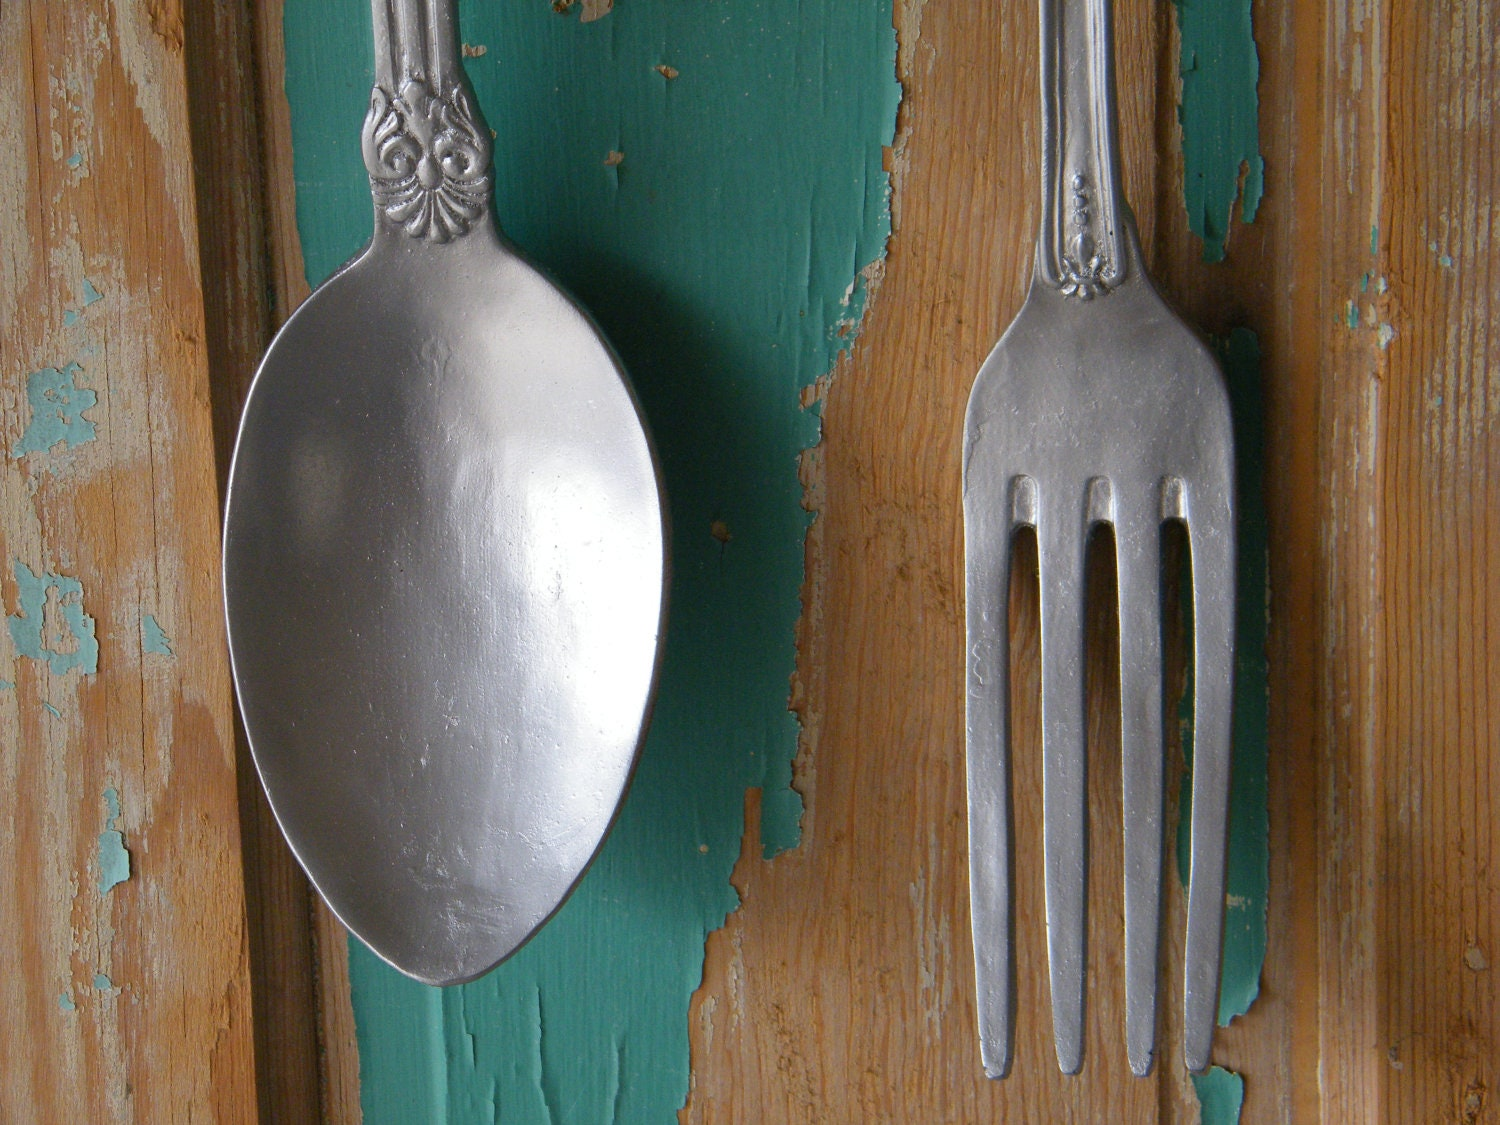 Wall Art Oversize Fork And Spoon Chrome Silver By Morrelldecor